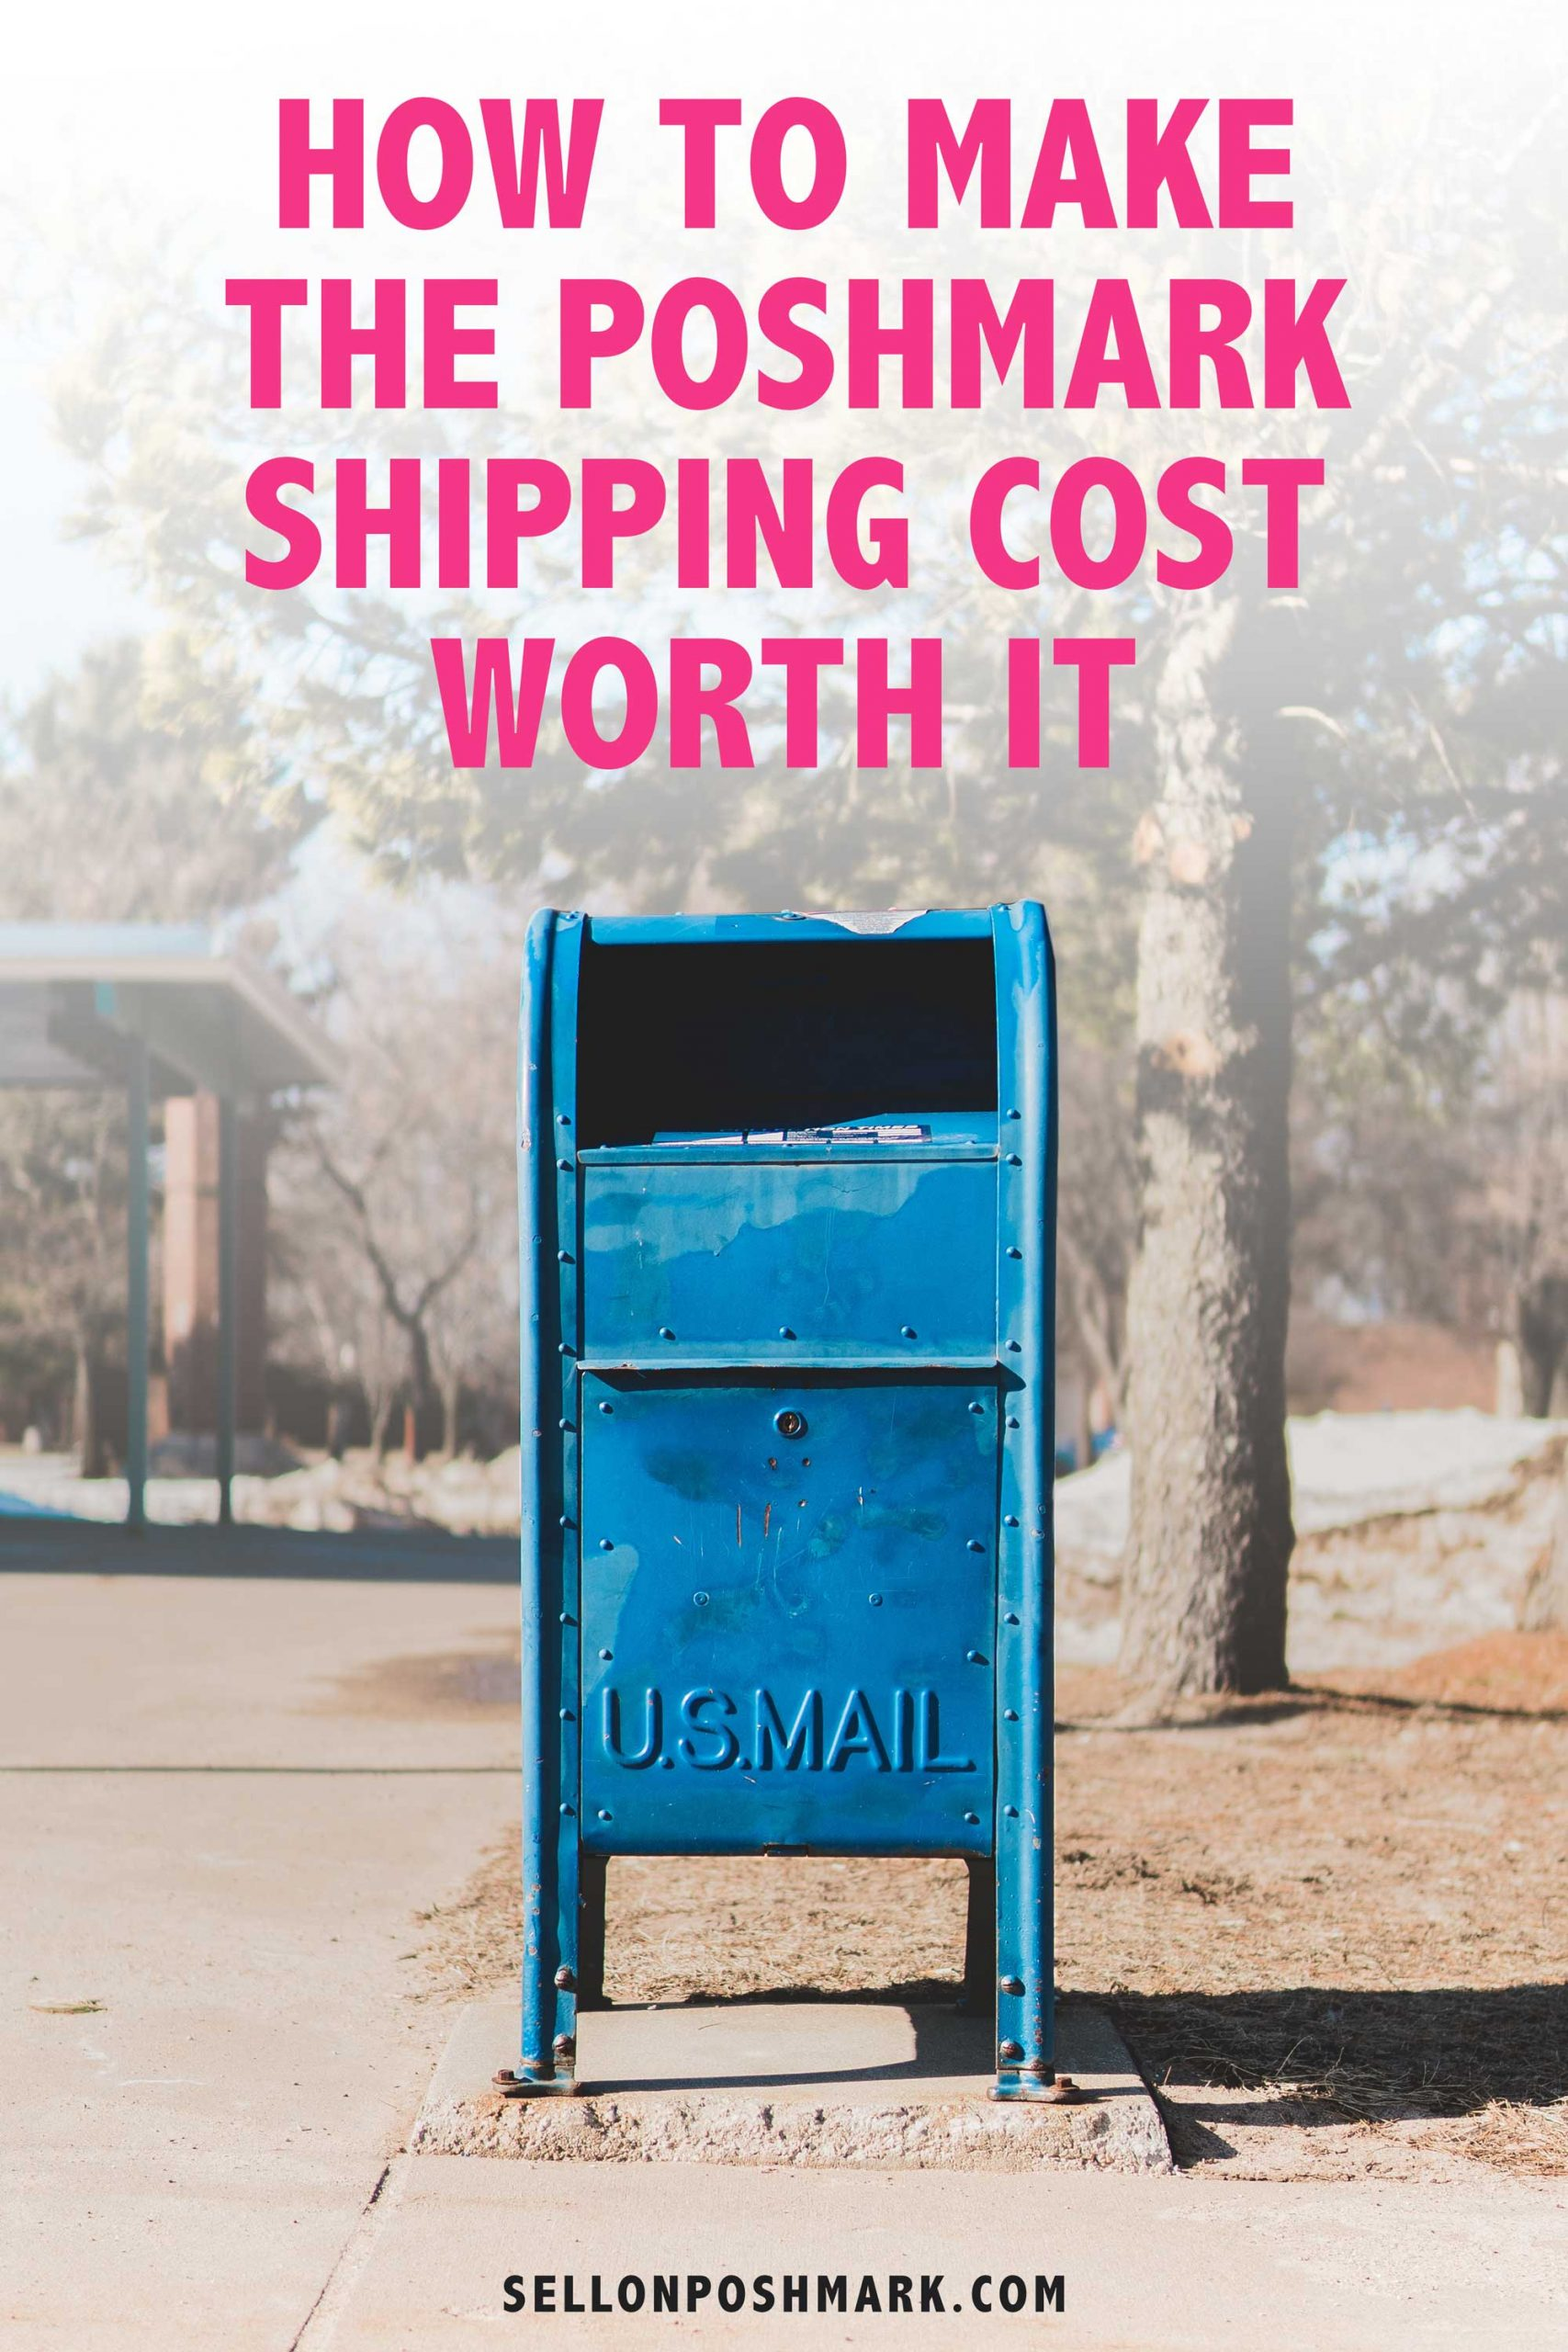 Poshmark Shipping Cost – How to Make Money as a Seller Despite Rate Increases